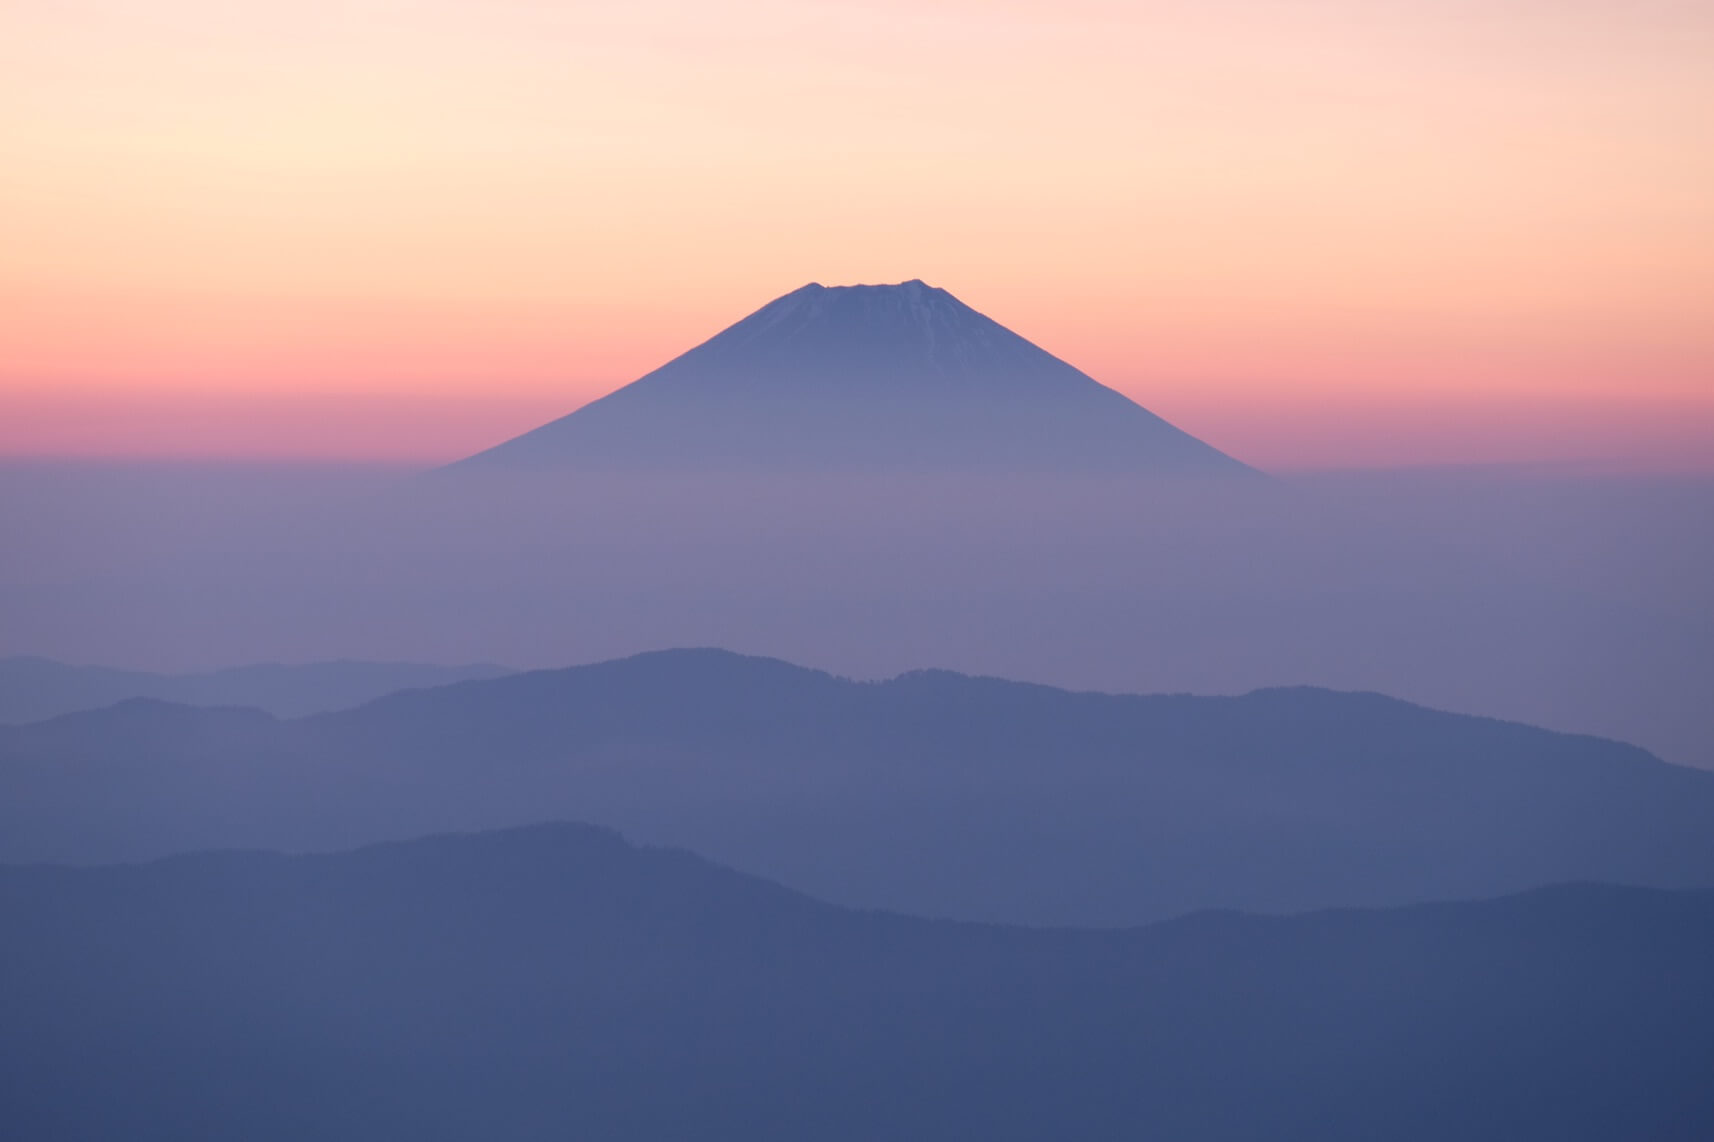 Mt. Fuji at Sunrise from Mt. Tekari, Southern Alps, Nagano